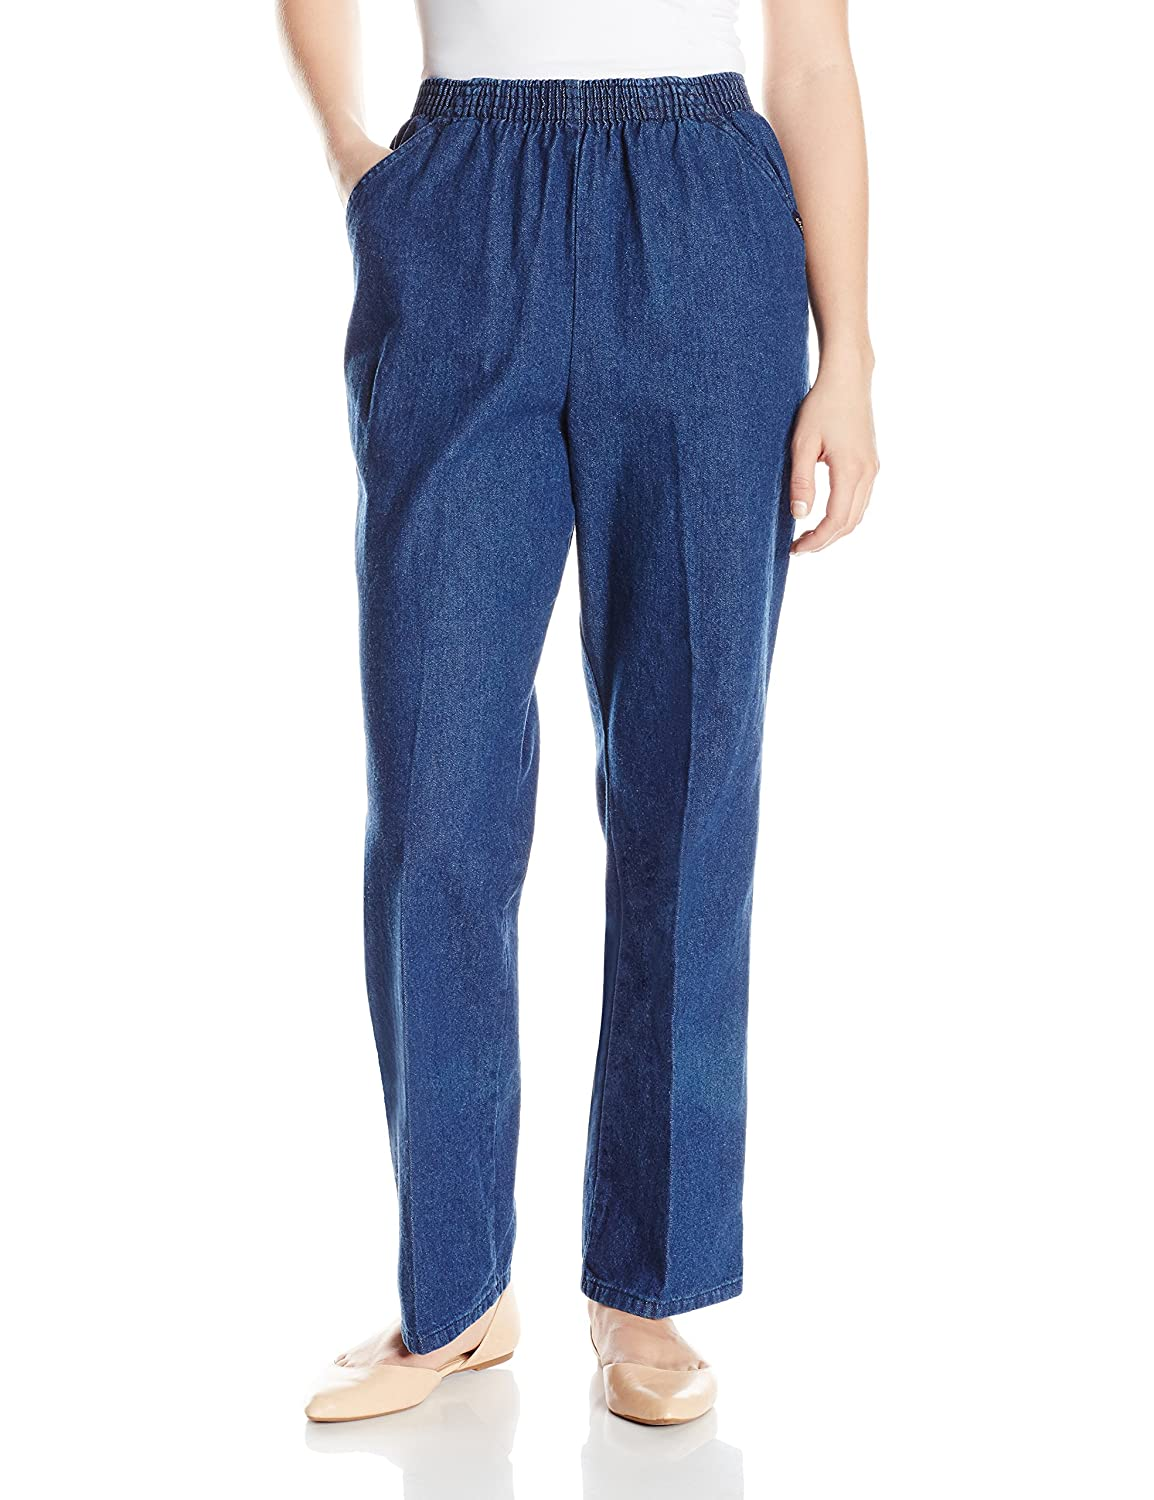 Chic Classic Collection Women's Cotton Pull-on Pant with Elastic Waist,